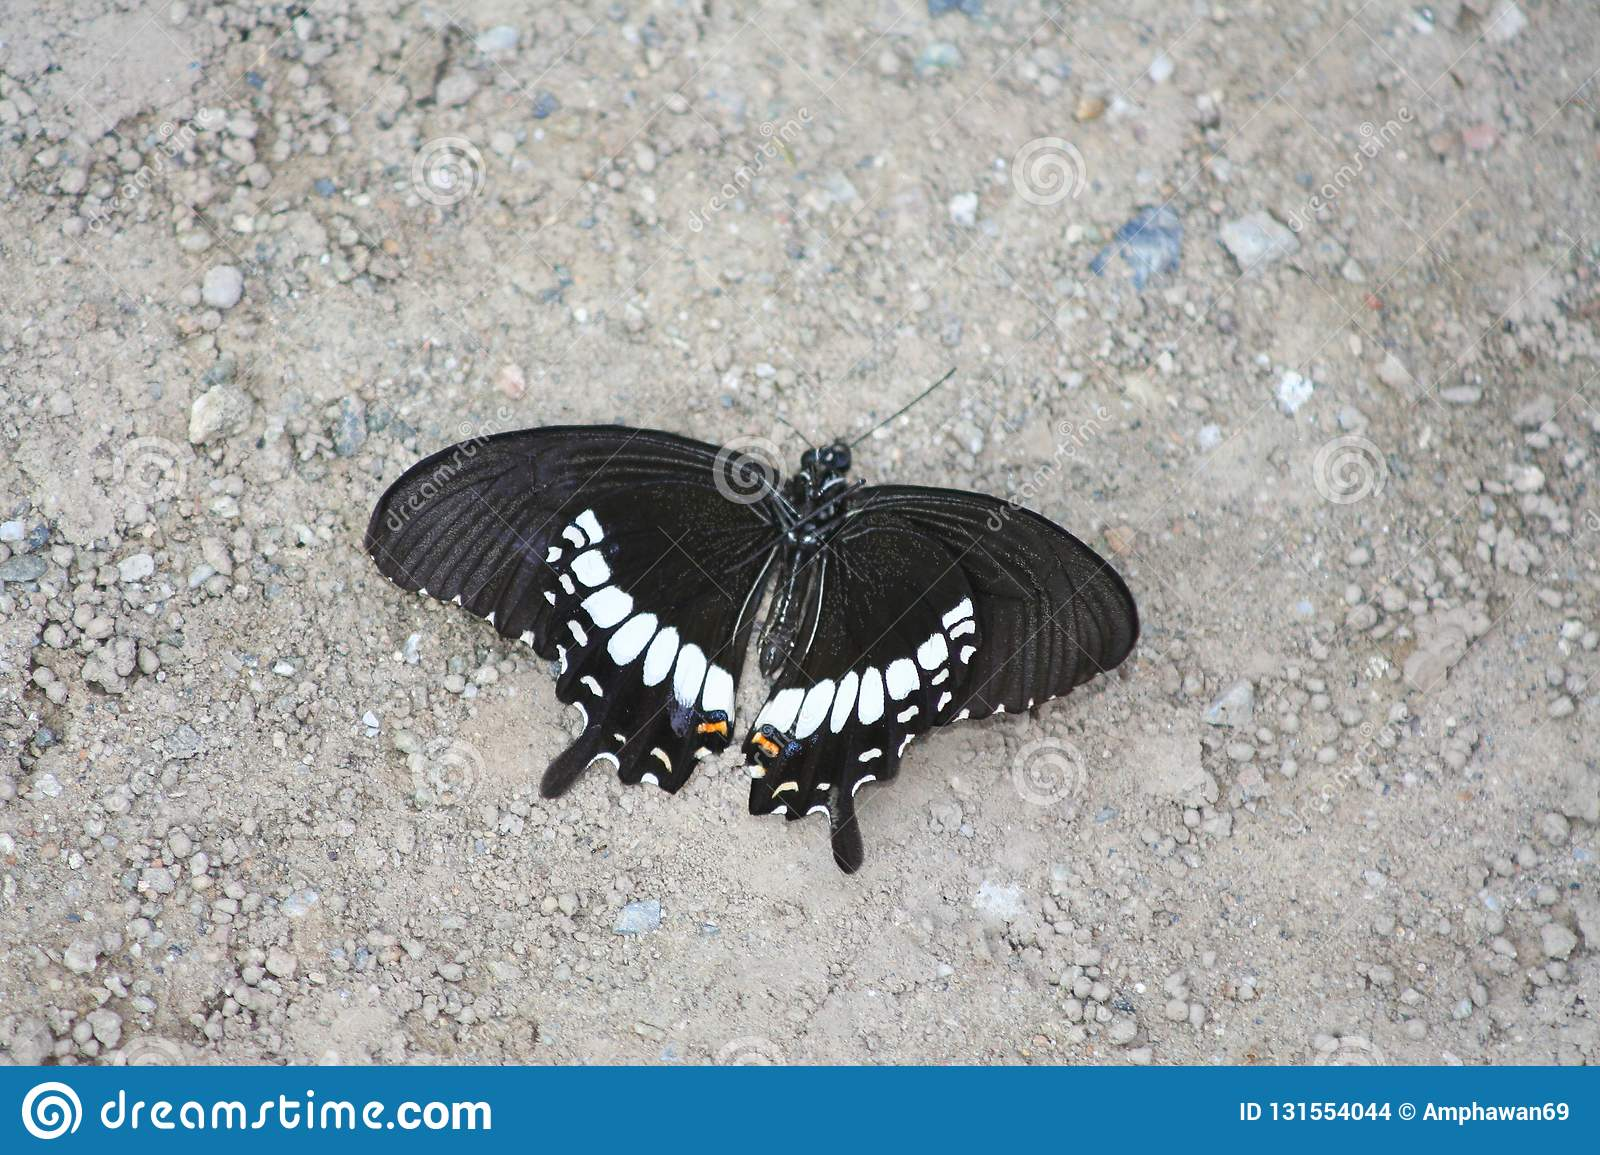 Died black butterfly on the ground